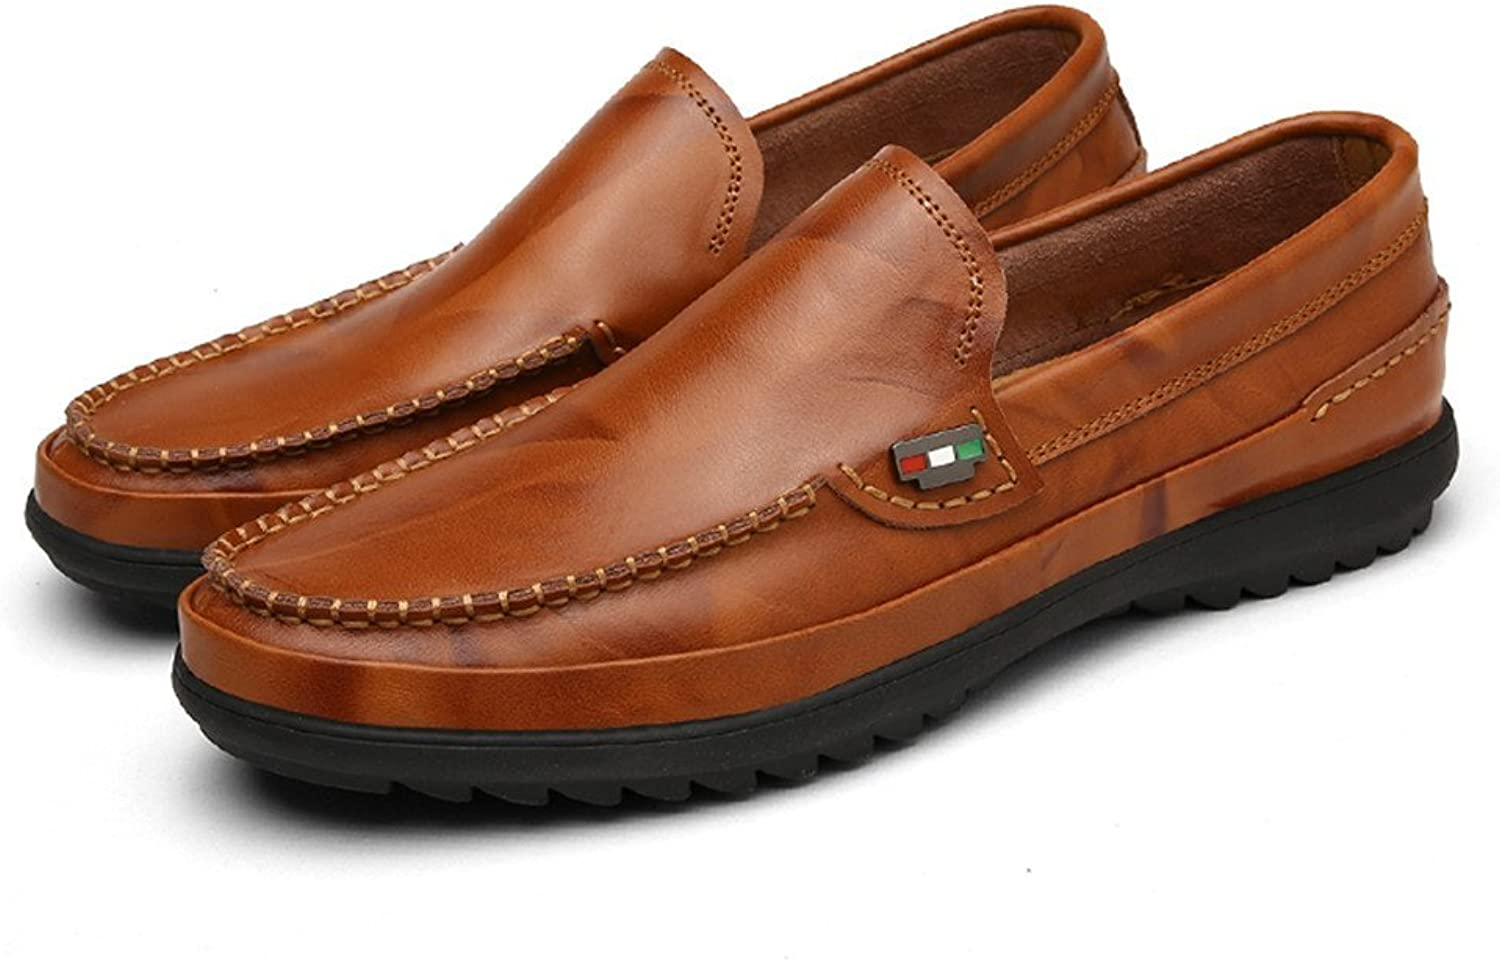 Men's Drive Loafers for Casual and high-end Breathable Soft Leather Soles Oxford Cricket shoes